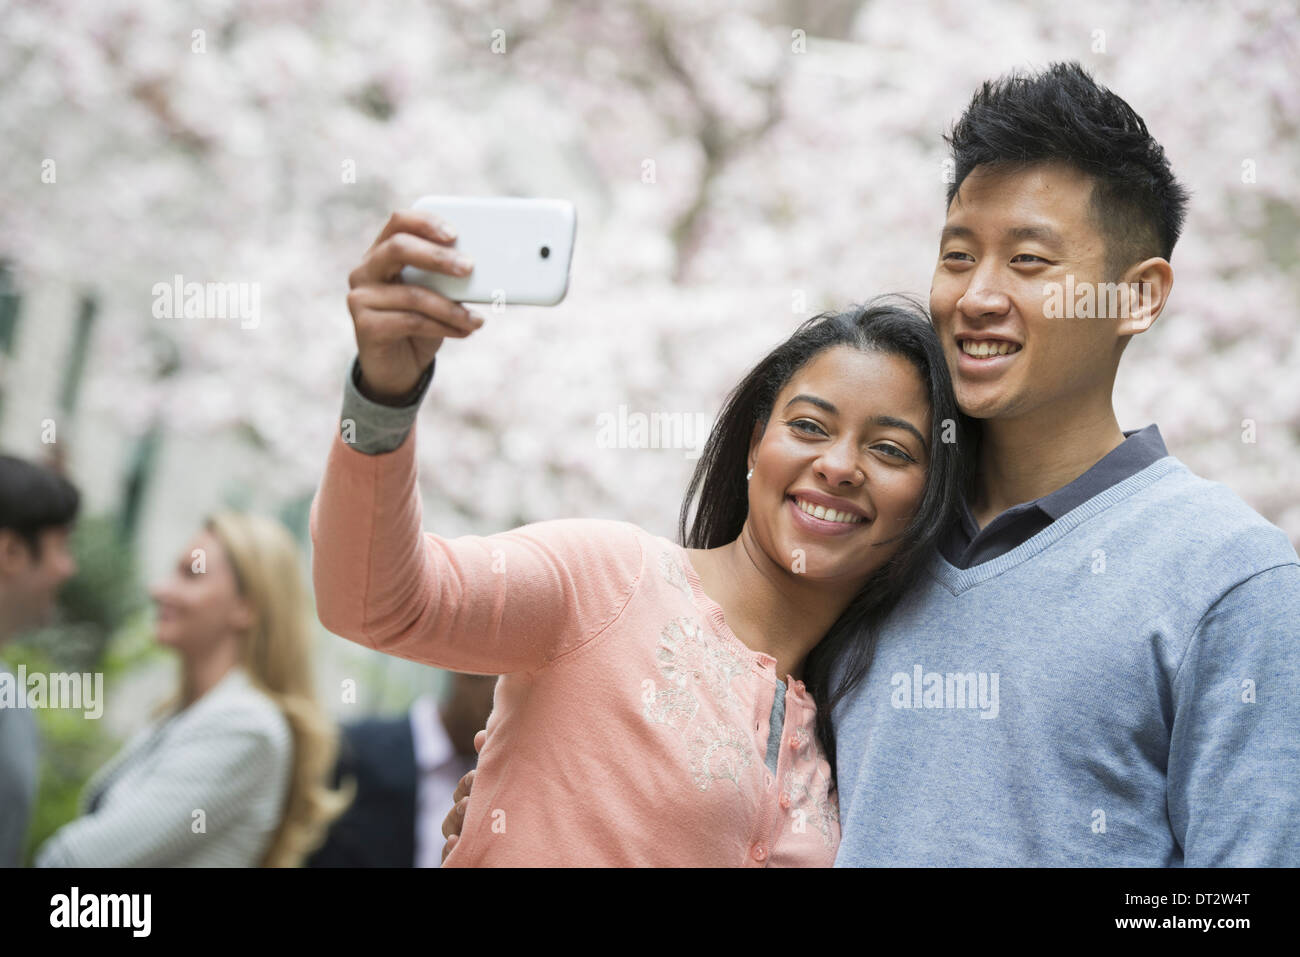 View over cityYoung people outdoors in a city park A couple taking a self portrait or selfy with a smart phone - Stock Image